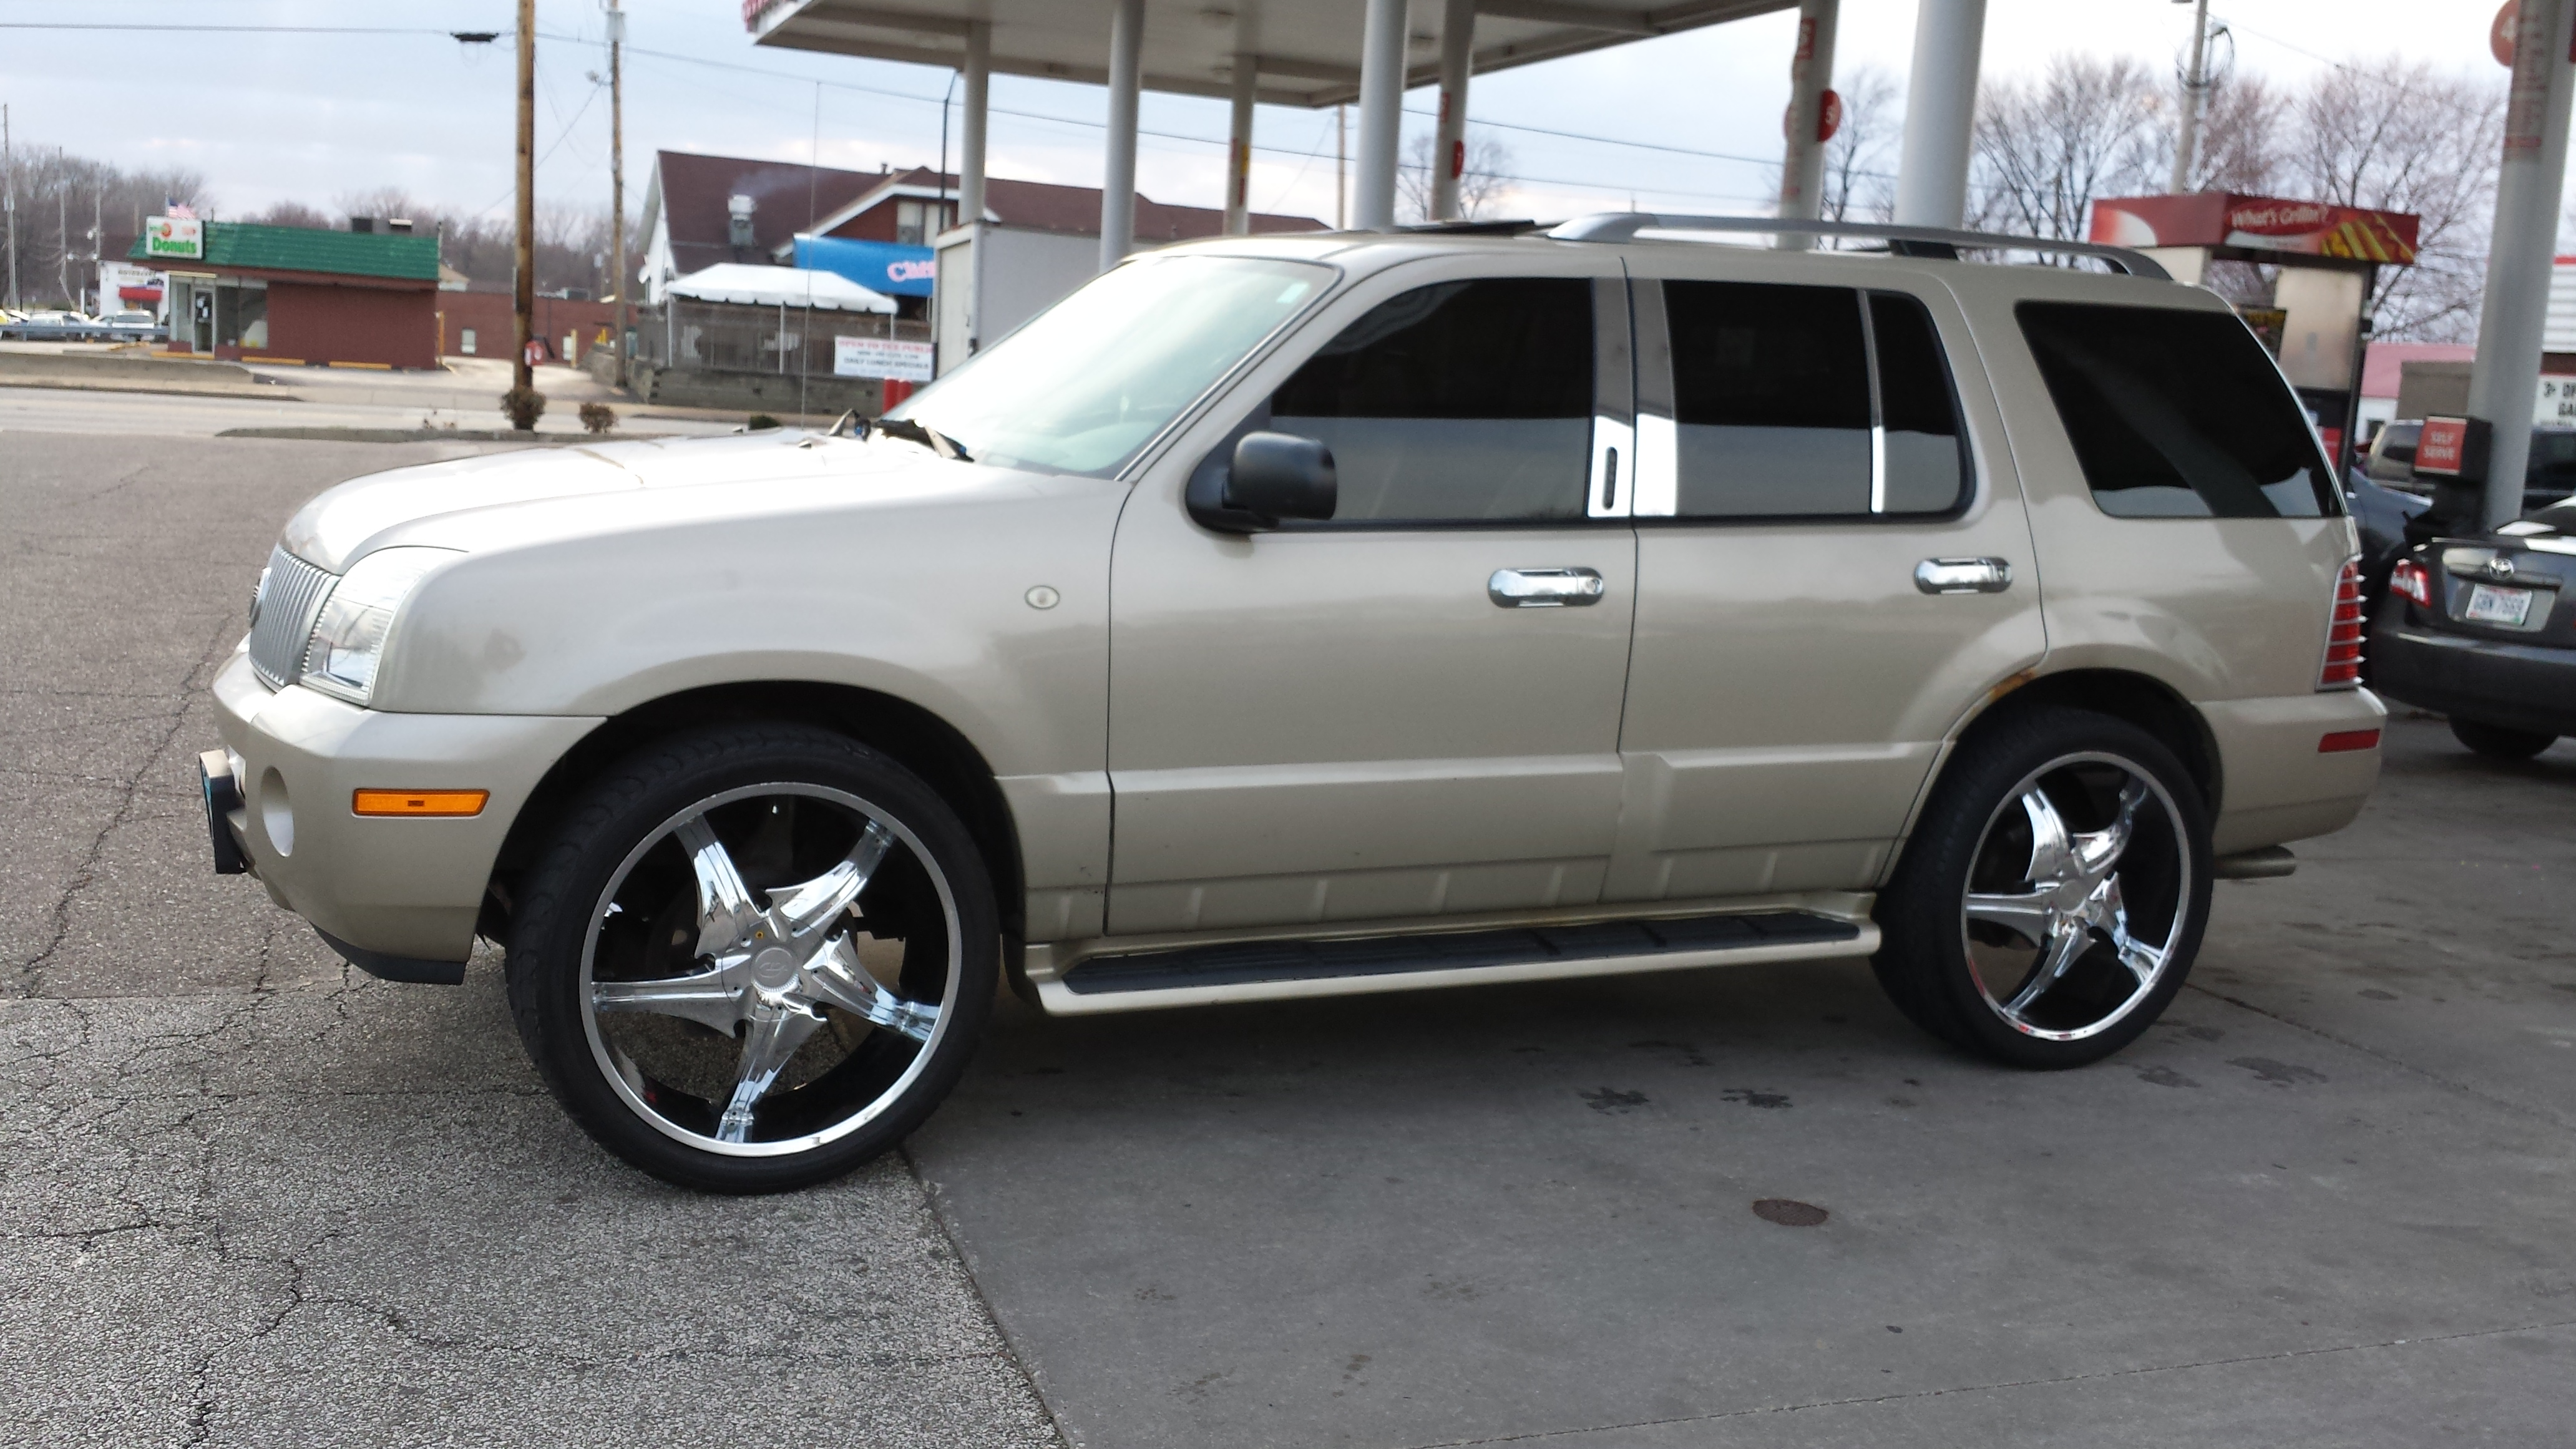 Diagram I Have A 2004 Mercury Mountaineer That I Have Continually